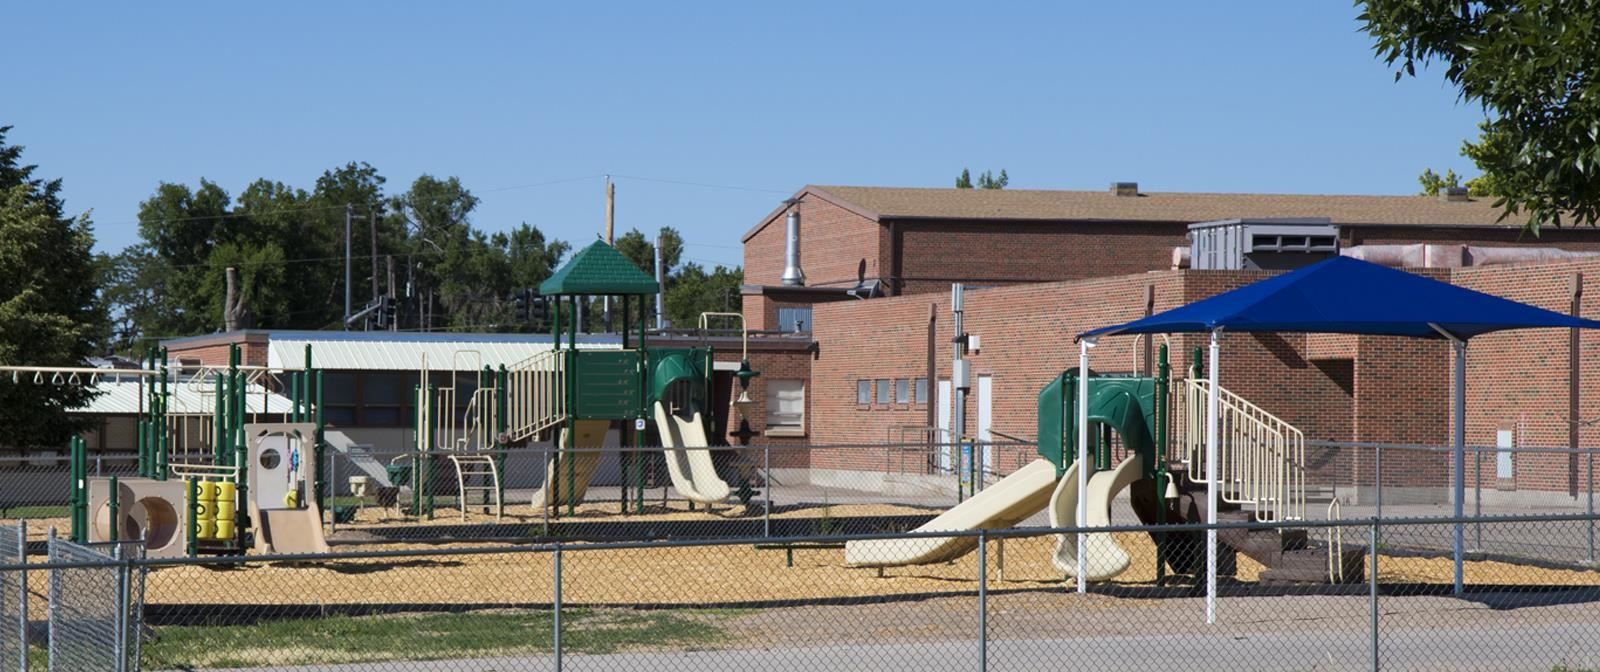 Outside of Beulah Heights school with playground on the side of the school